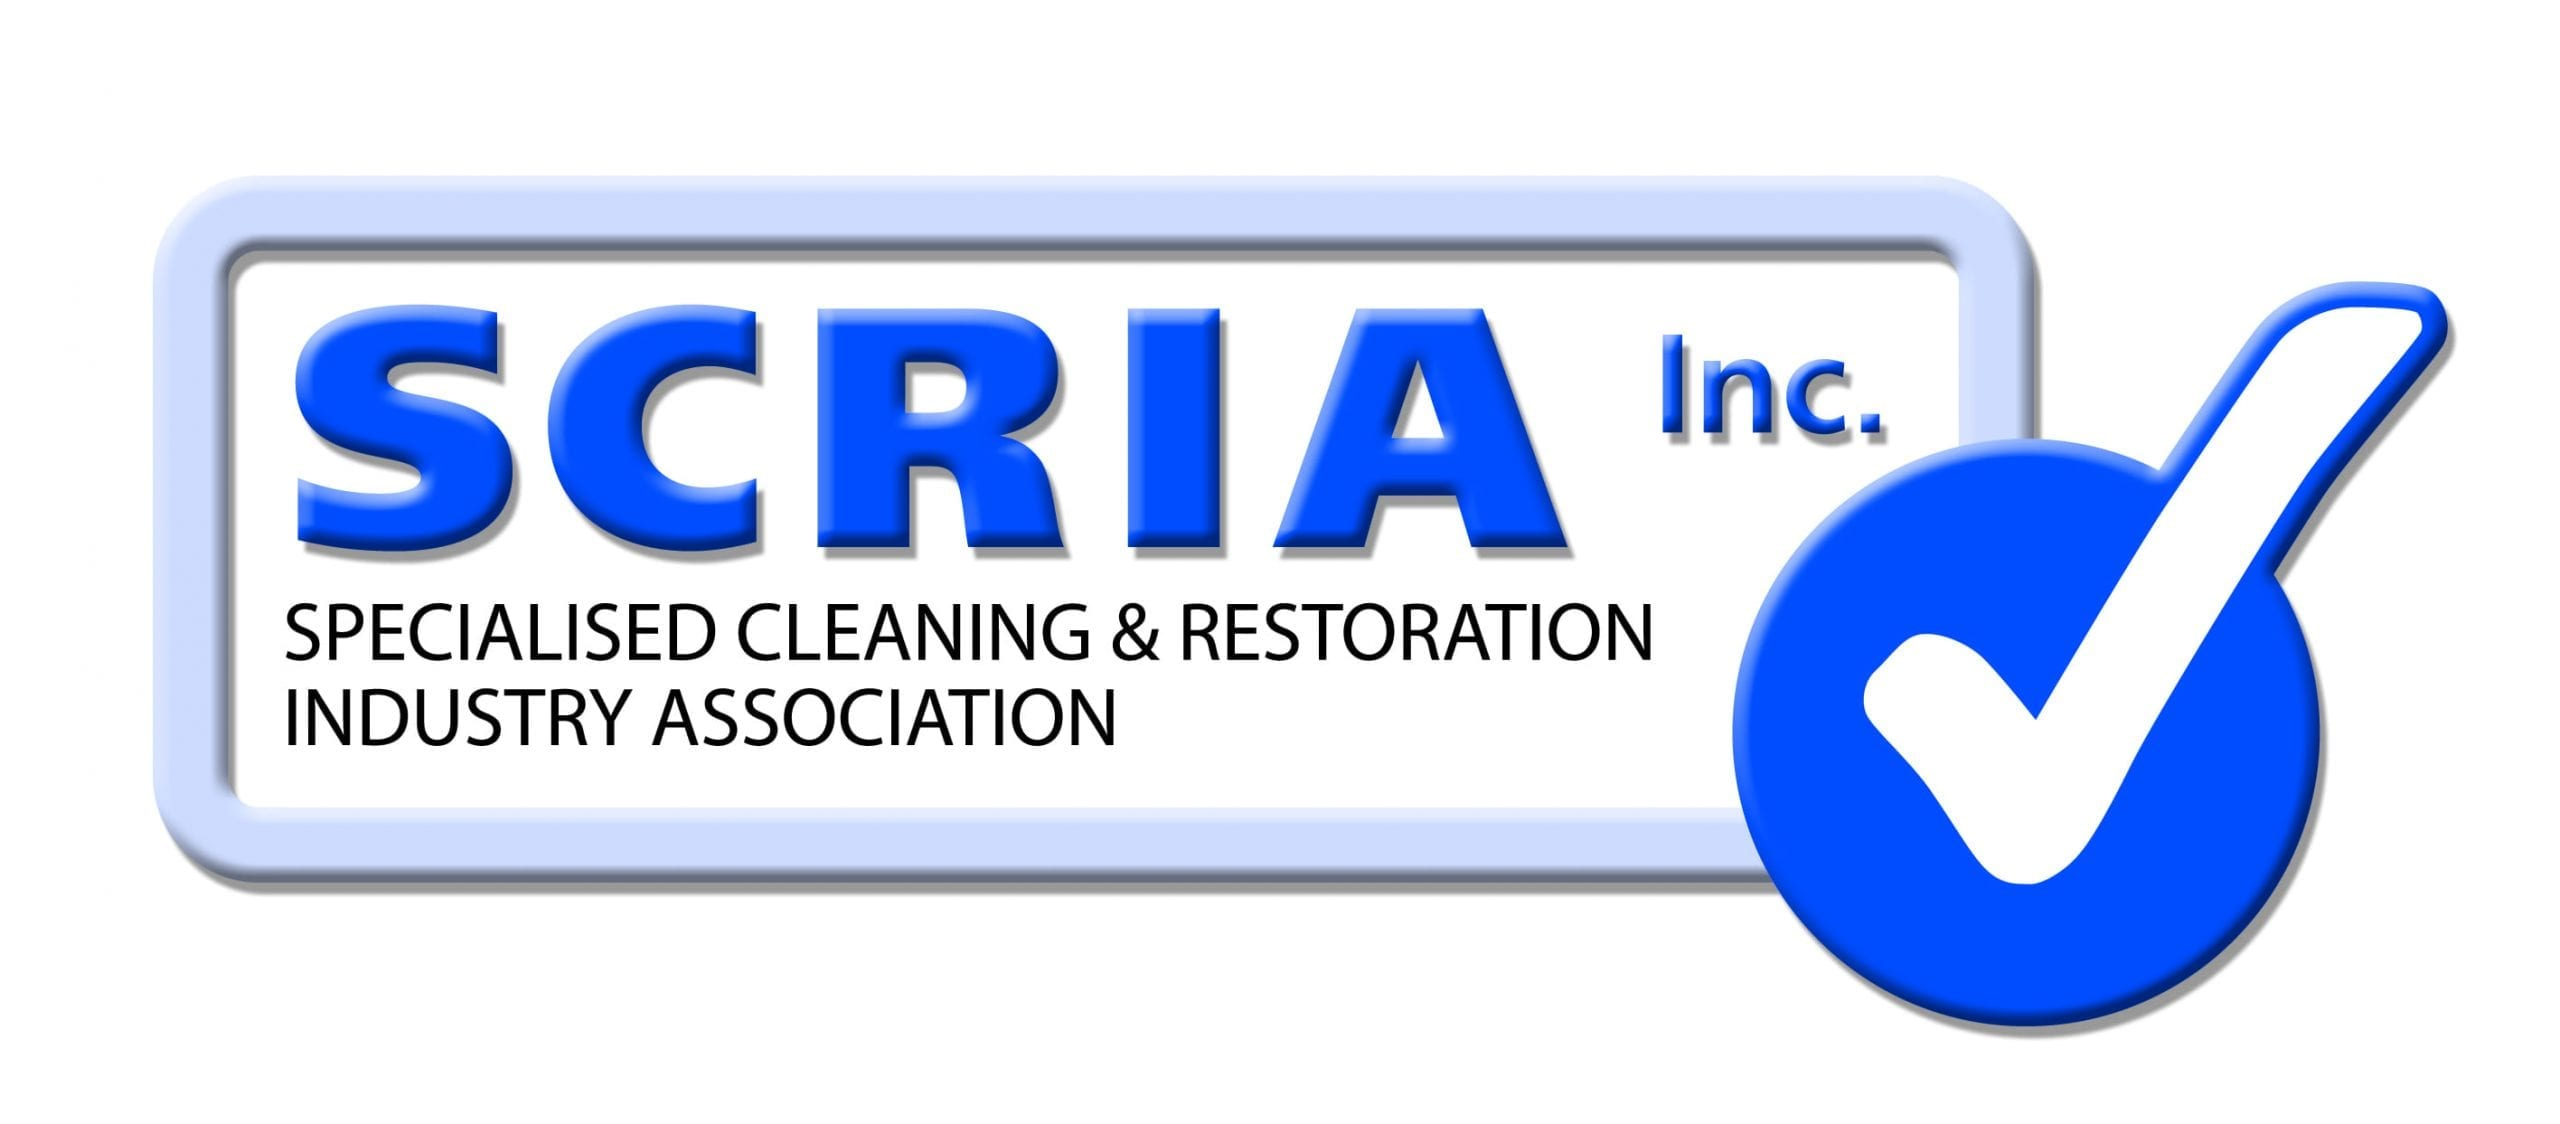 Health & Safety Technician-Carpet Cleaning Technician-Water Damage Restoration Technician-Carpet Repair & Reinstallation Technician-Colour Repair Technician-Odor Control Technician-Applied Microbial Remediation Technician-Applied Structual Drying Technician-Commercial Drying Specialist-Upholstery & Fabric Cleaning Technician-Floor Care Technician-Fire & Smoke Restoration Technician-Rug Cleaning Technician